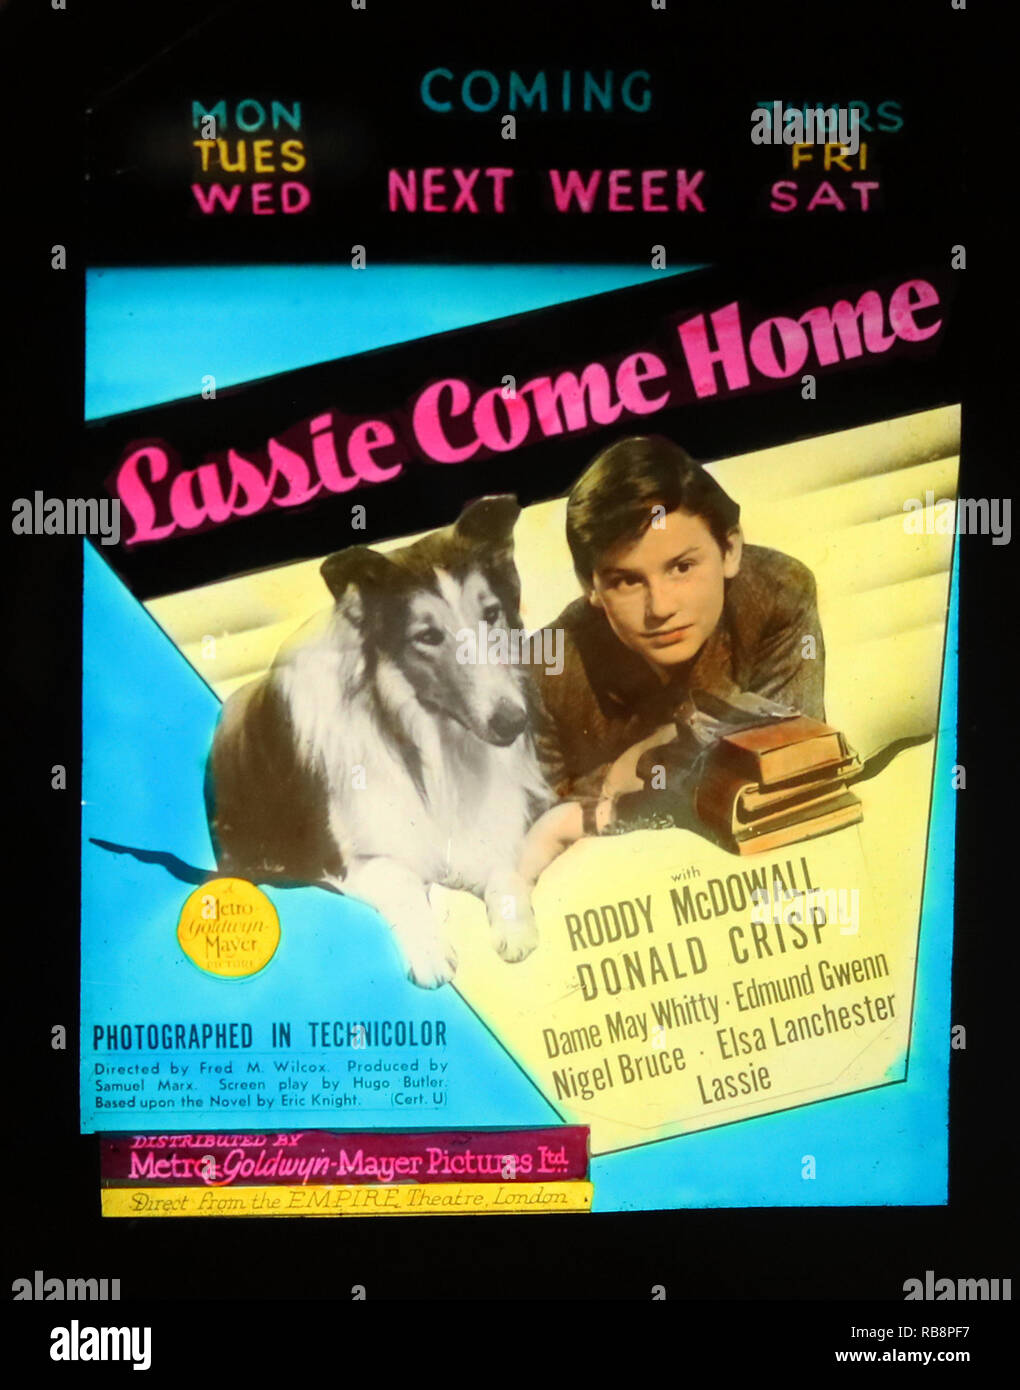 Roddy McDowall 'Lassie Come Home' movie advertisement - Stock Image